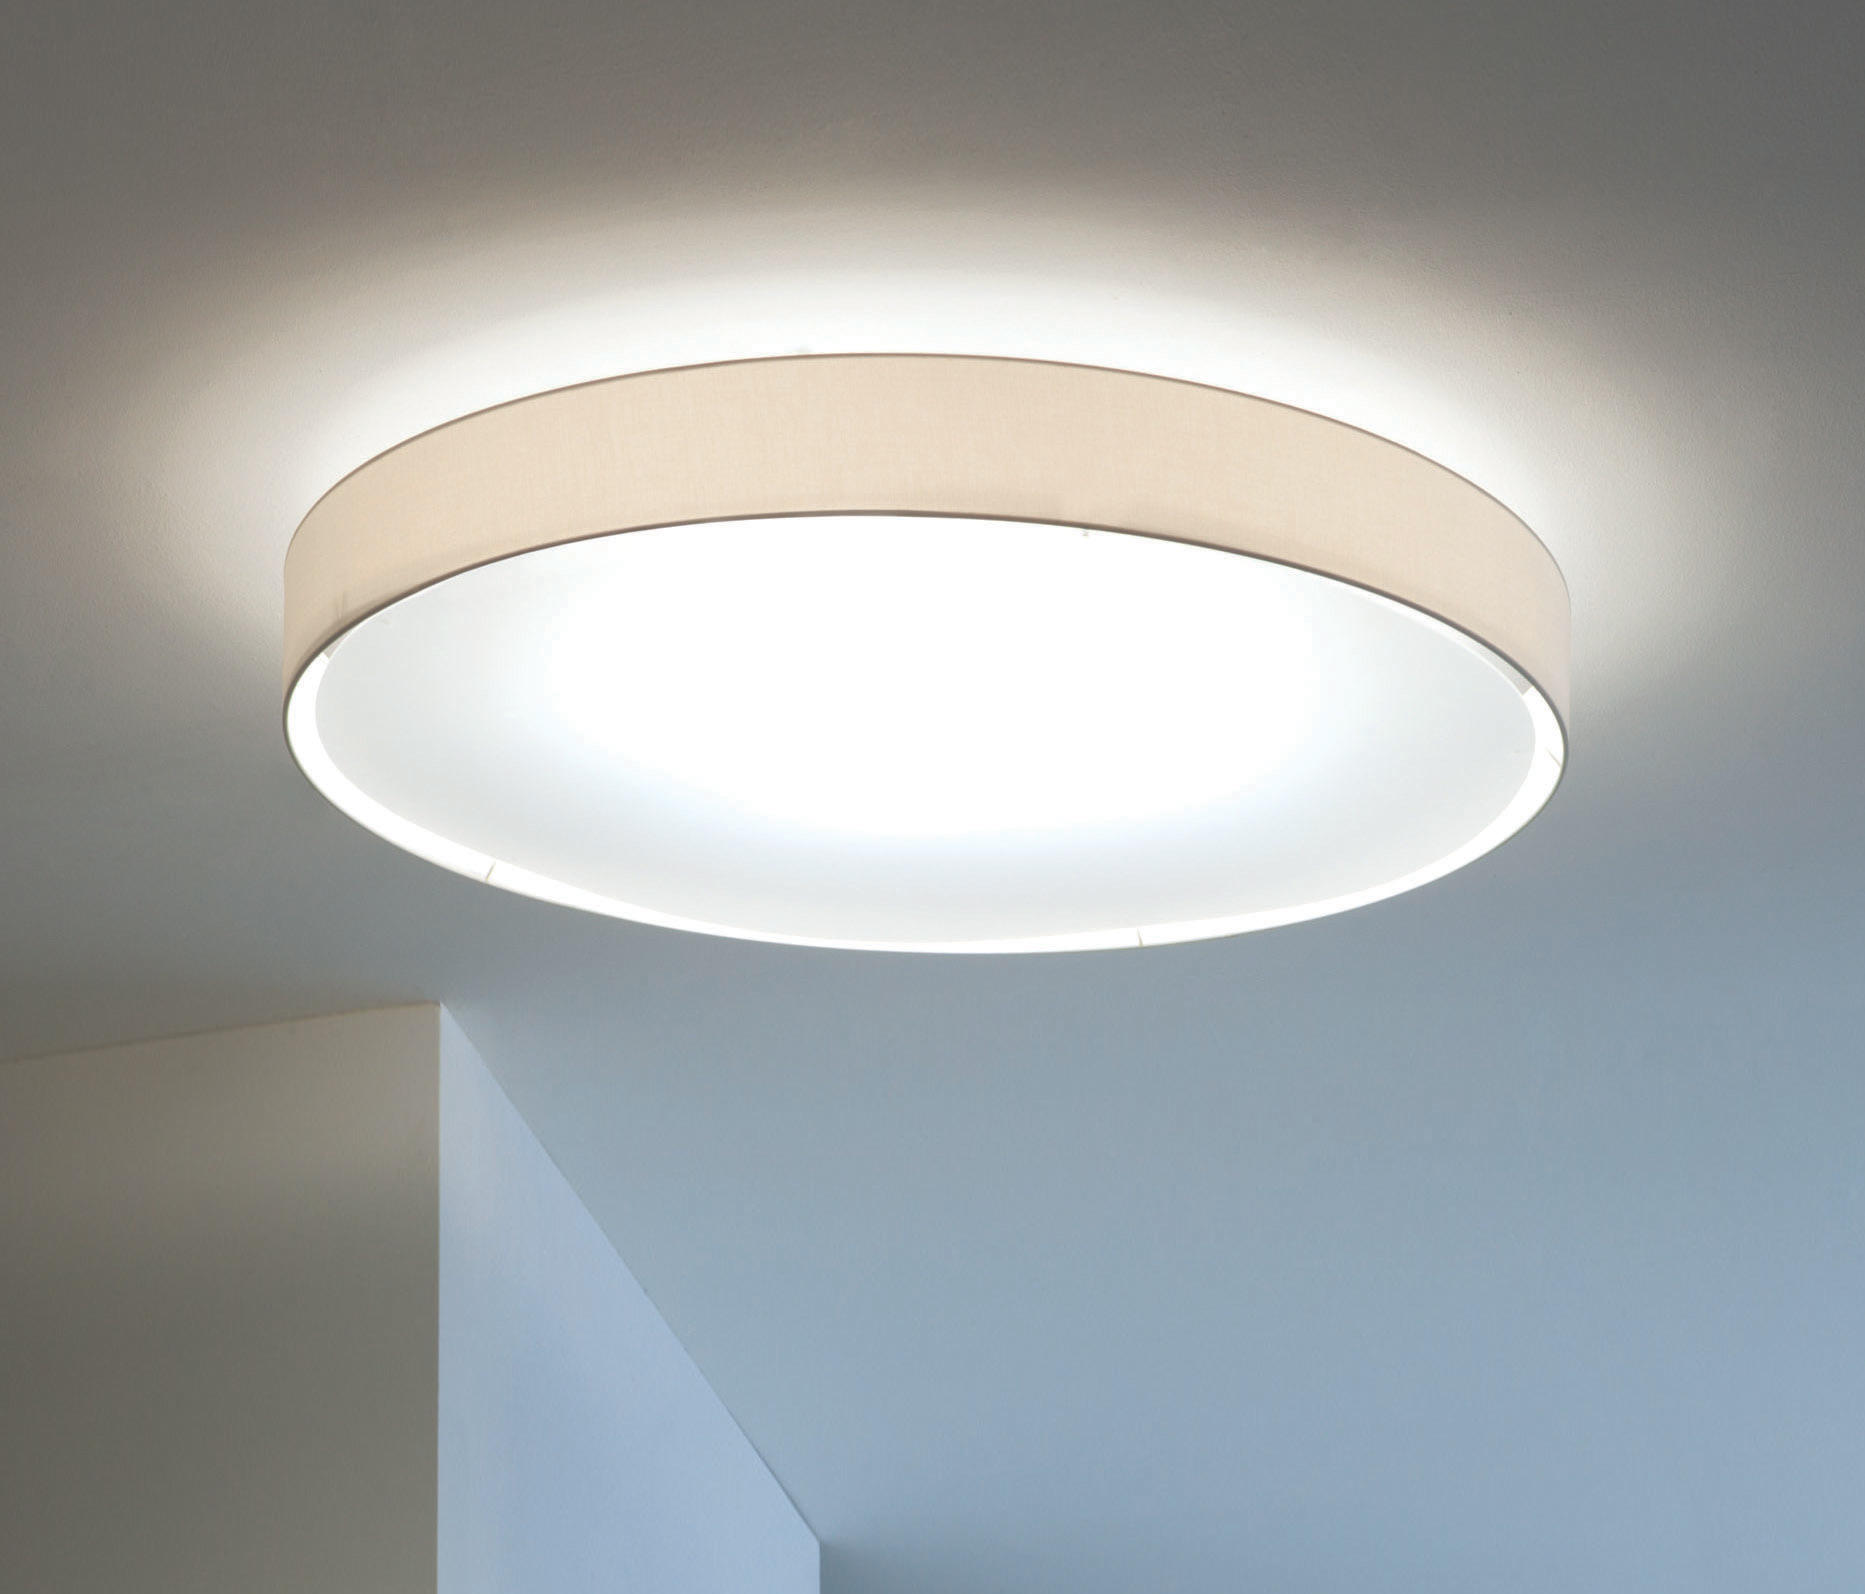 Lights Ceiling Mirya Ceiling Light Ceiling Lights From Lucente Architonic